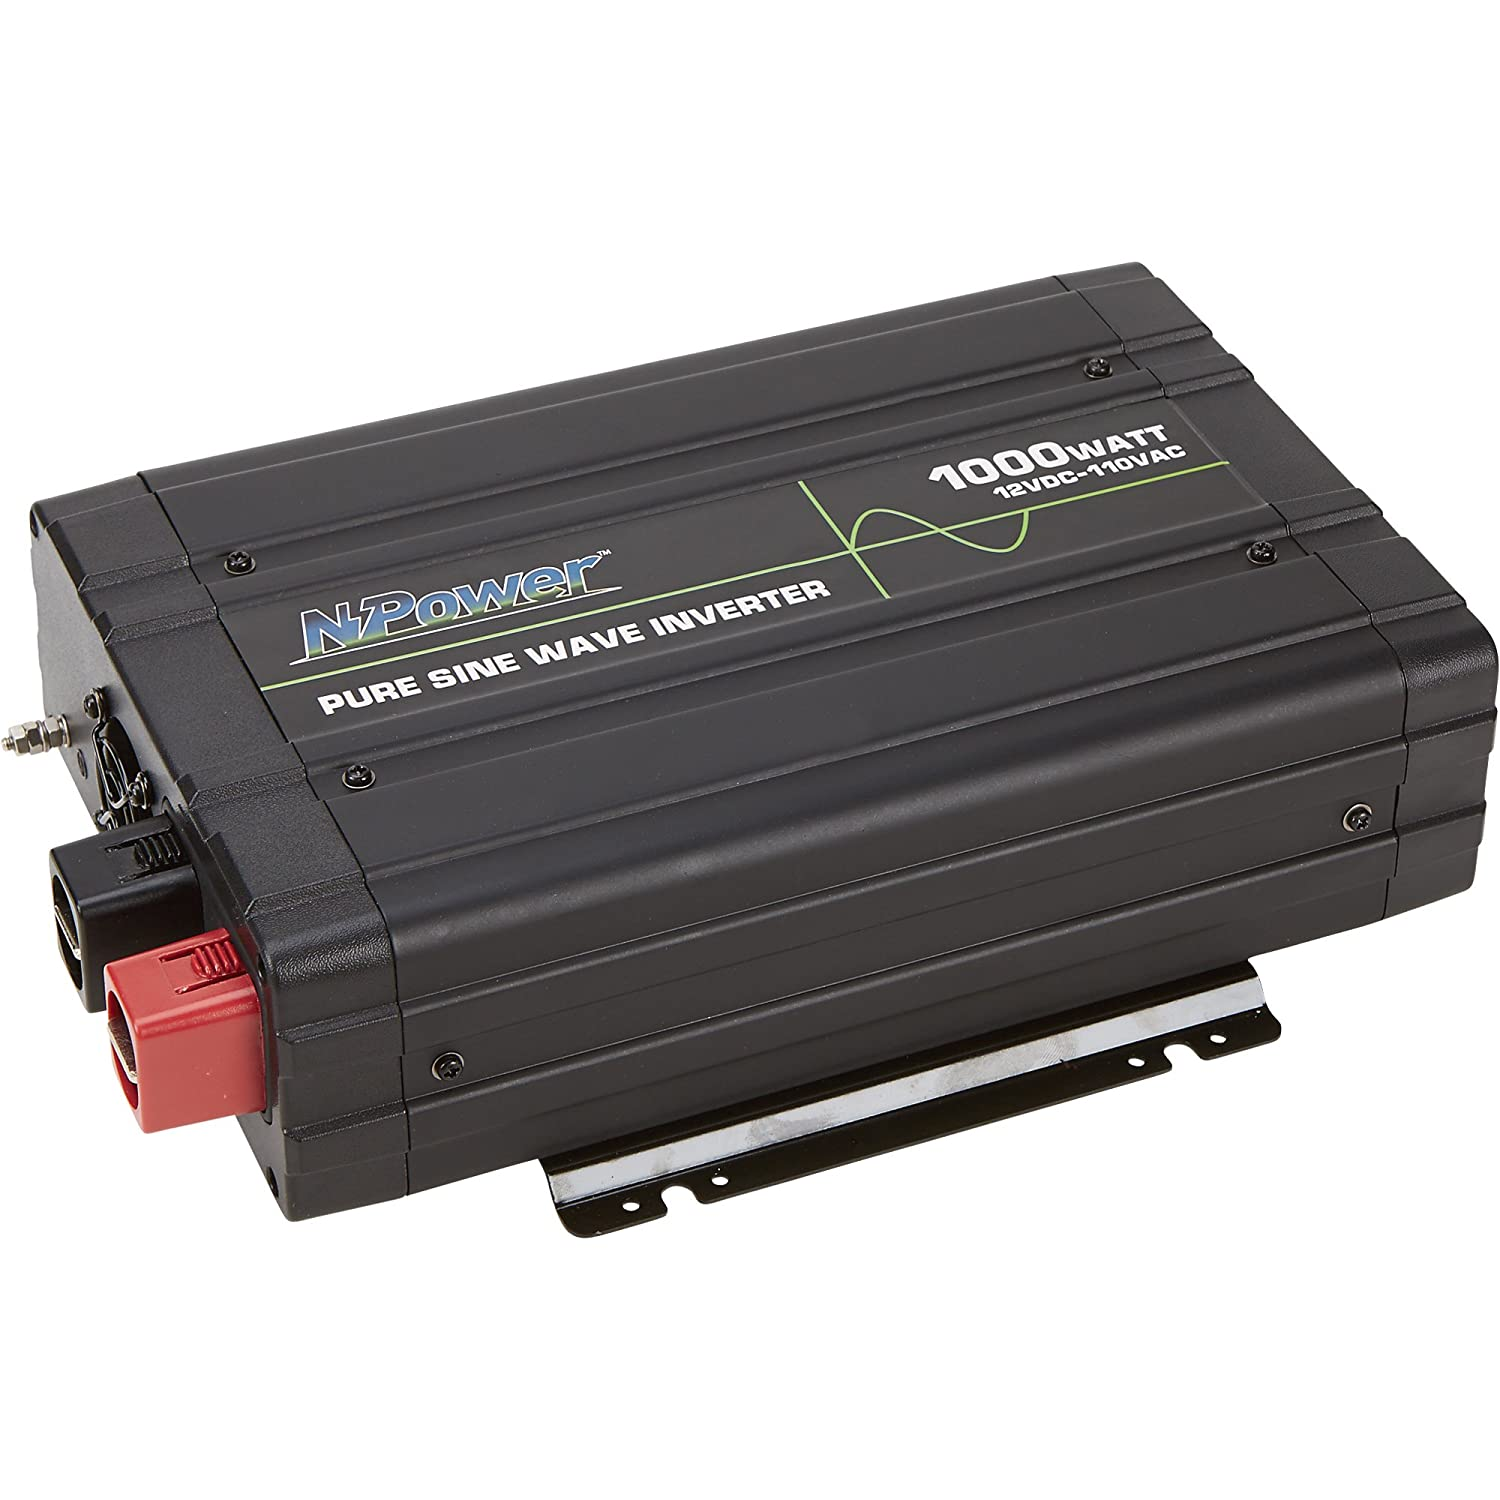 Npower Xrp Pure Sine Wave Power Inverter With Remote True Idea Control 900 Watts Home Audio Theater